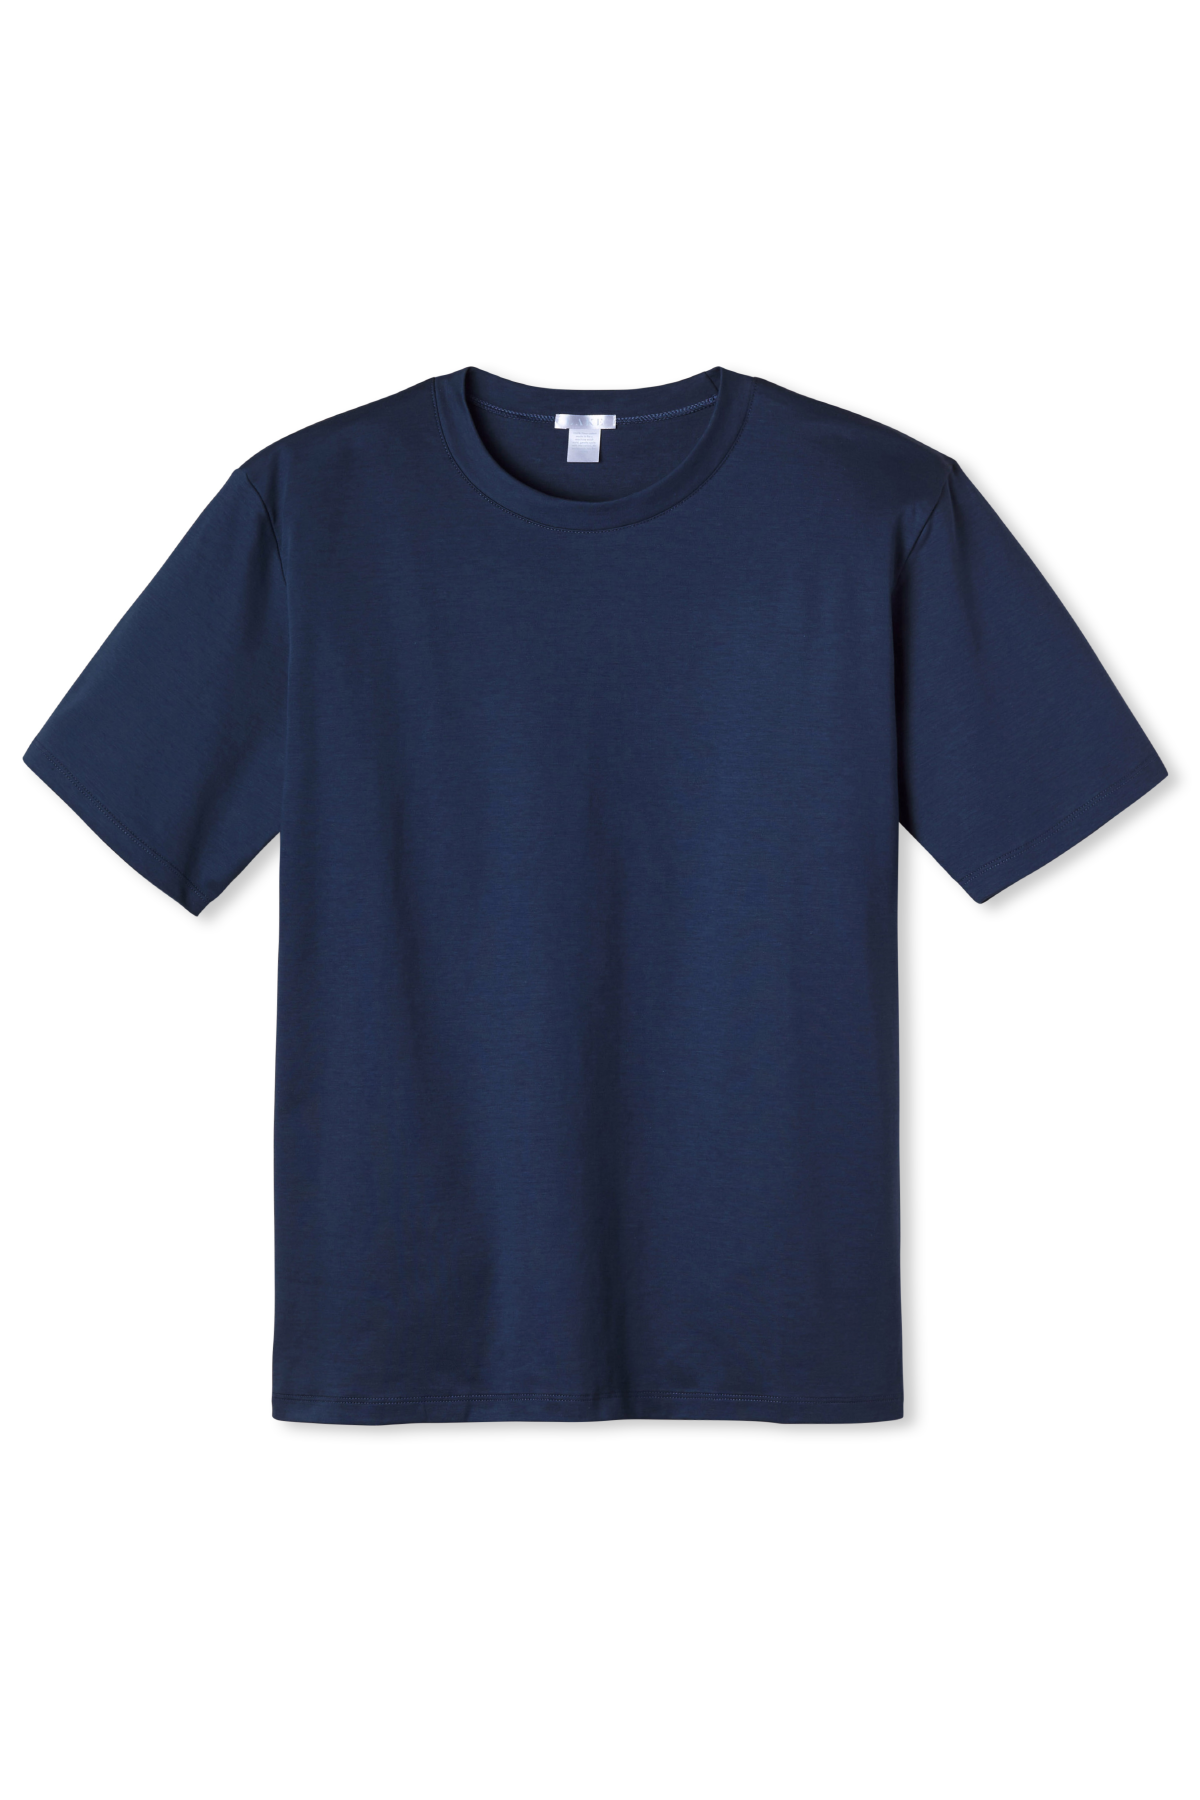 Men's Short Sleeve Pima Tee in True Navy